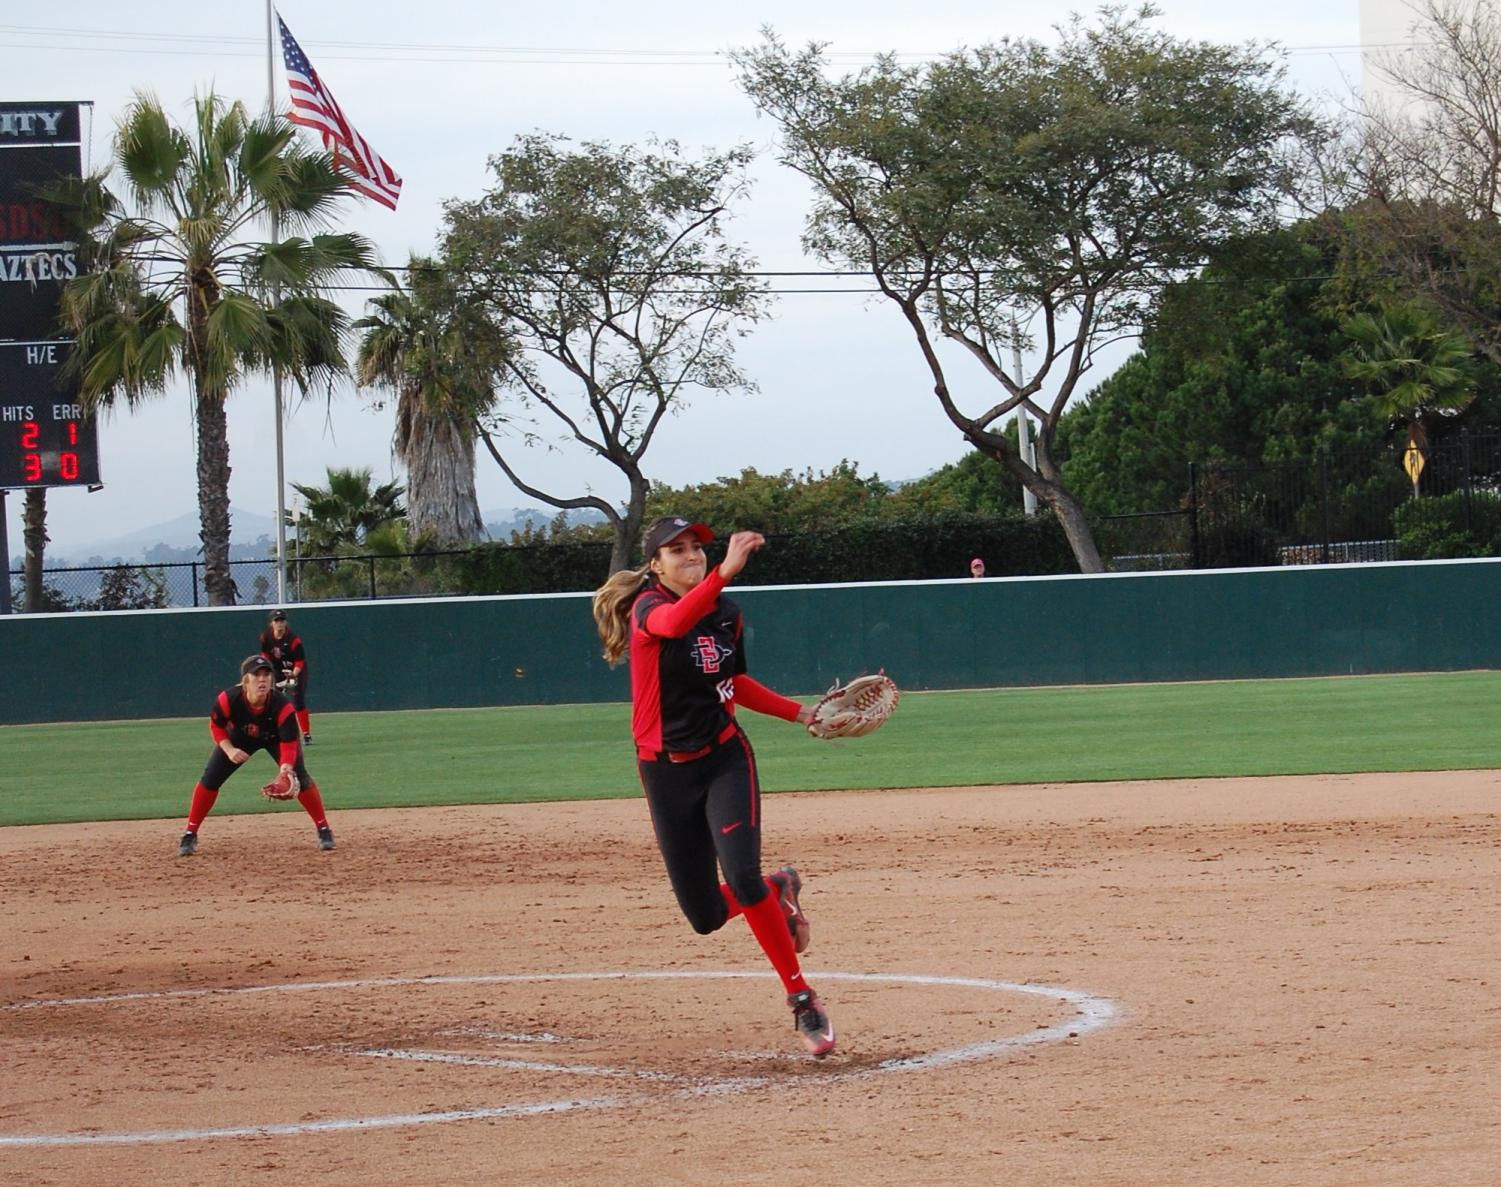 Junior pitcher Julie McDonald throws a pitch during the Aztecs 3-1 loss to Boise State on March 30 at SDSU Softball Stadium.